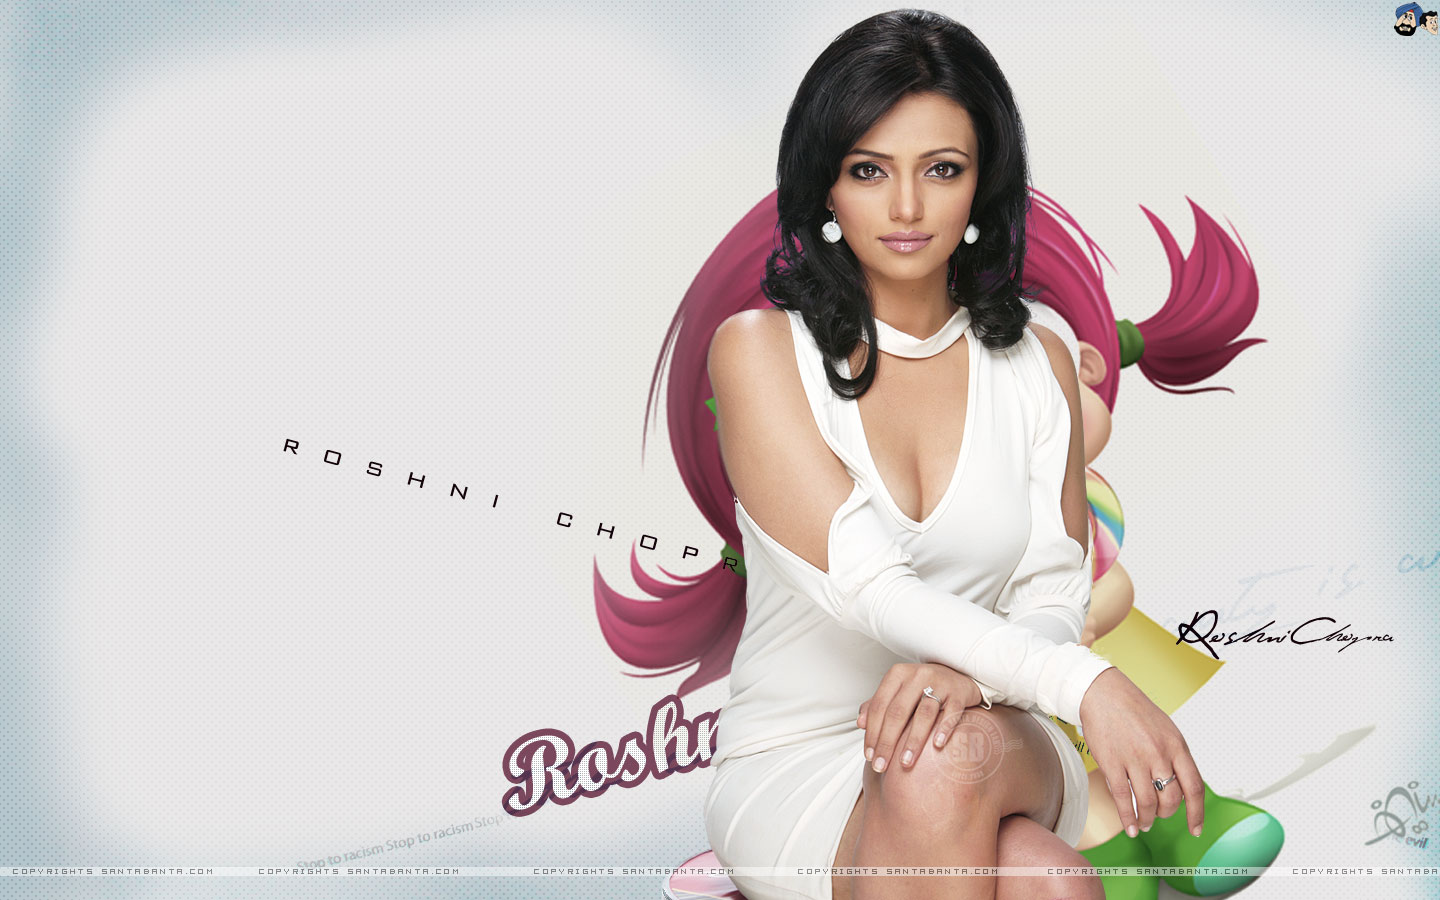 Roshni Chopra Indian Hot TV Actress and Host LatestGallerycom